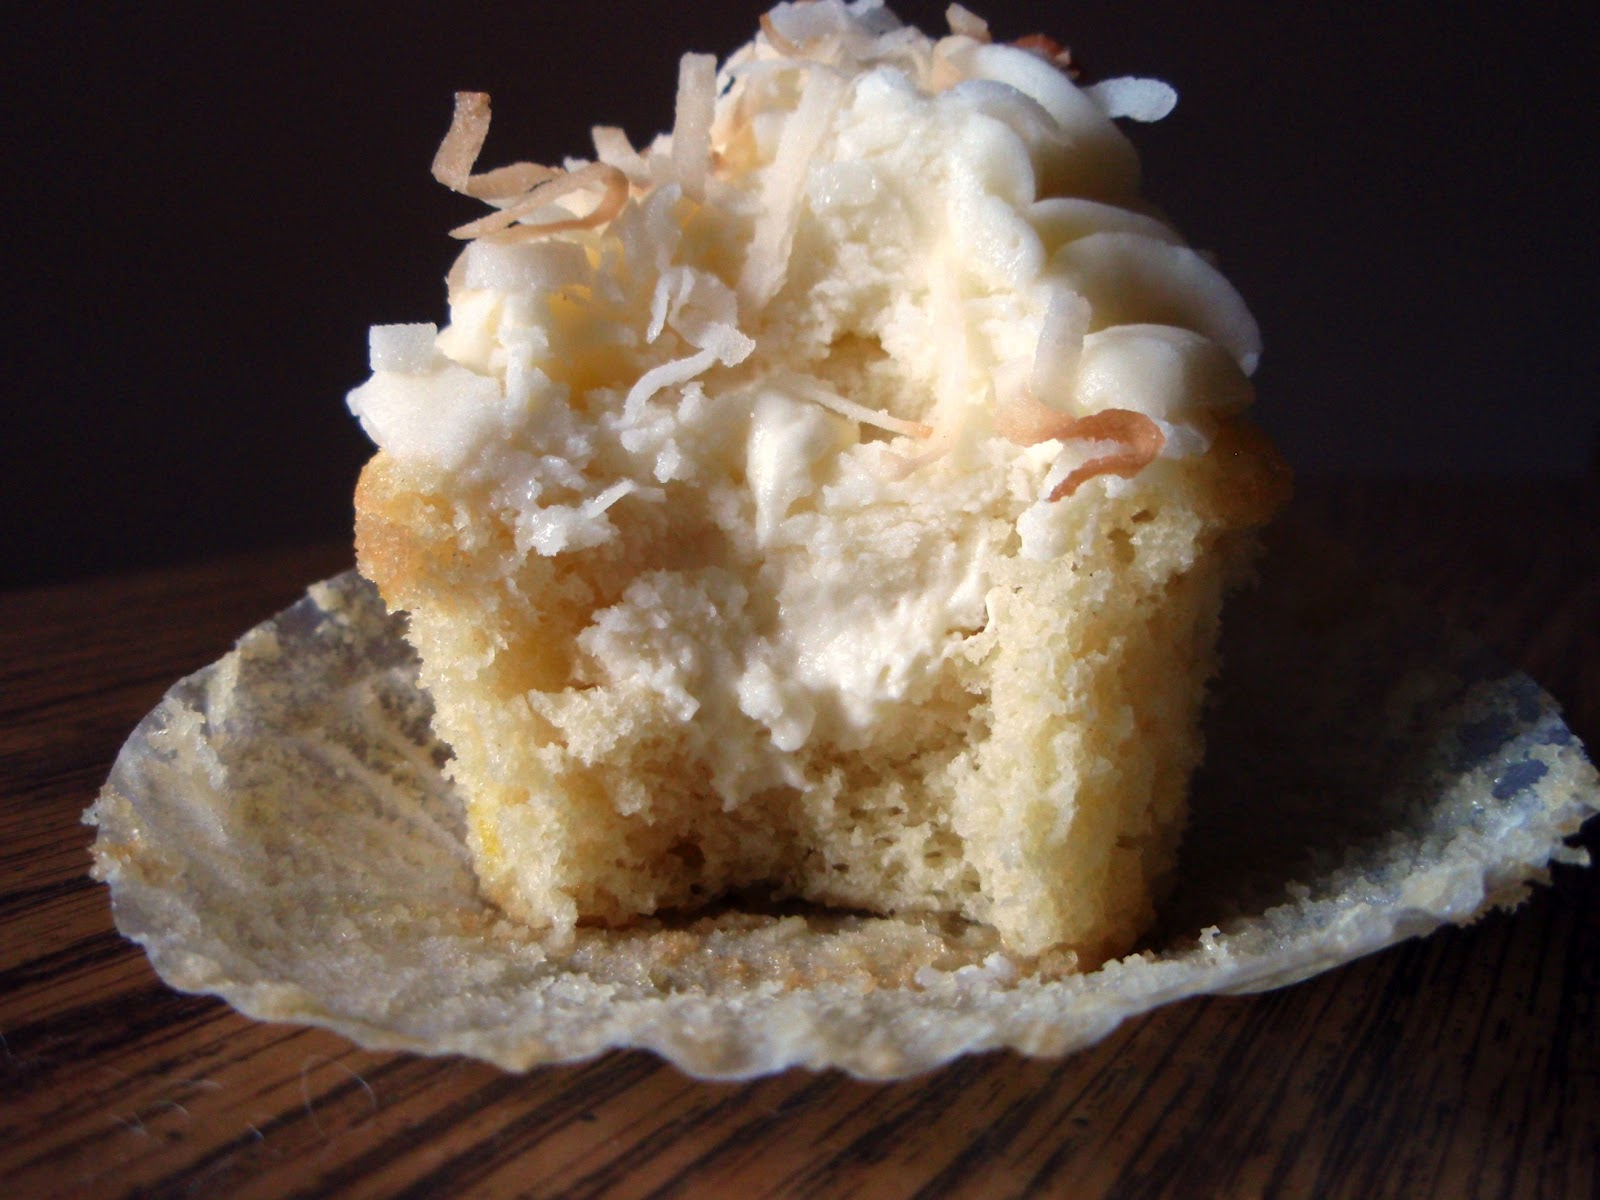 ... cream pie cupcakes. That, my friends, is what you've stumbled upon